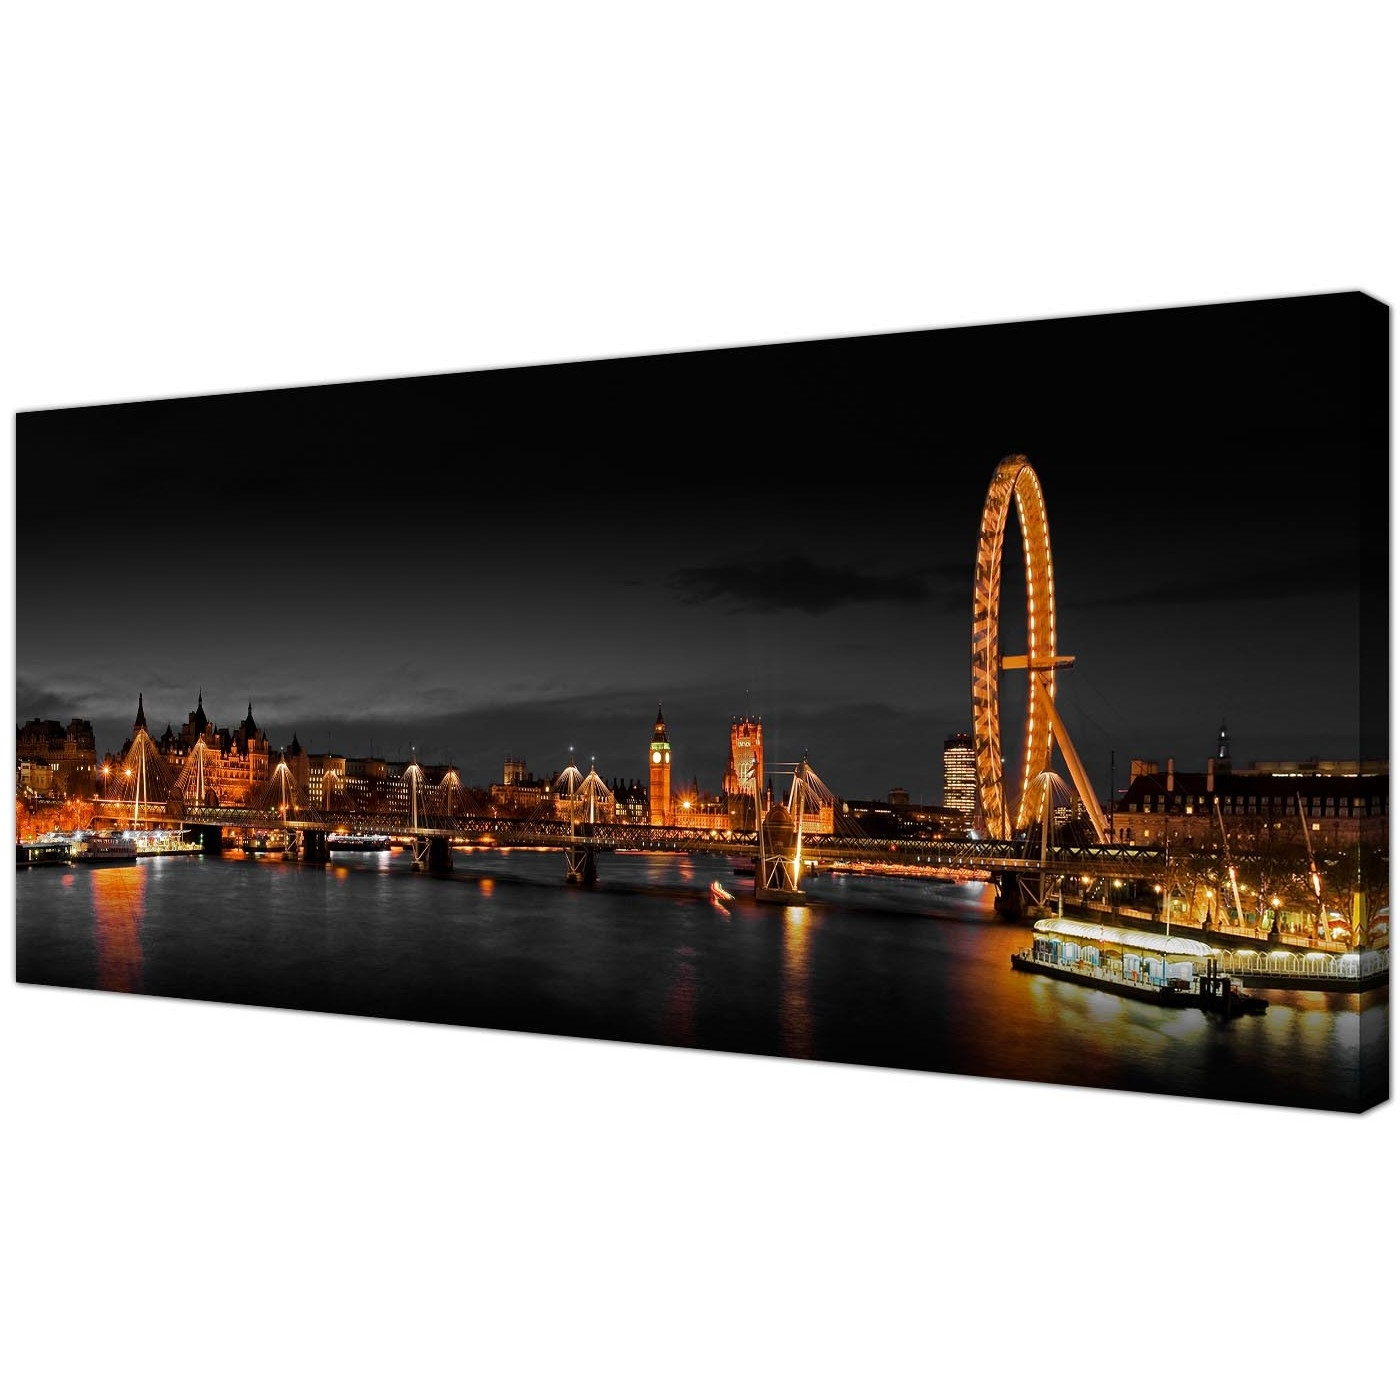 2017 Panoramic Canvas Wall Art Of London Eye At Night For Your Living Room For Panoramic Wall Art (Gallery 3 of 15)